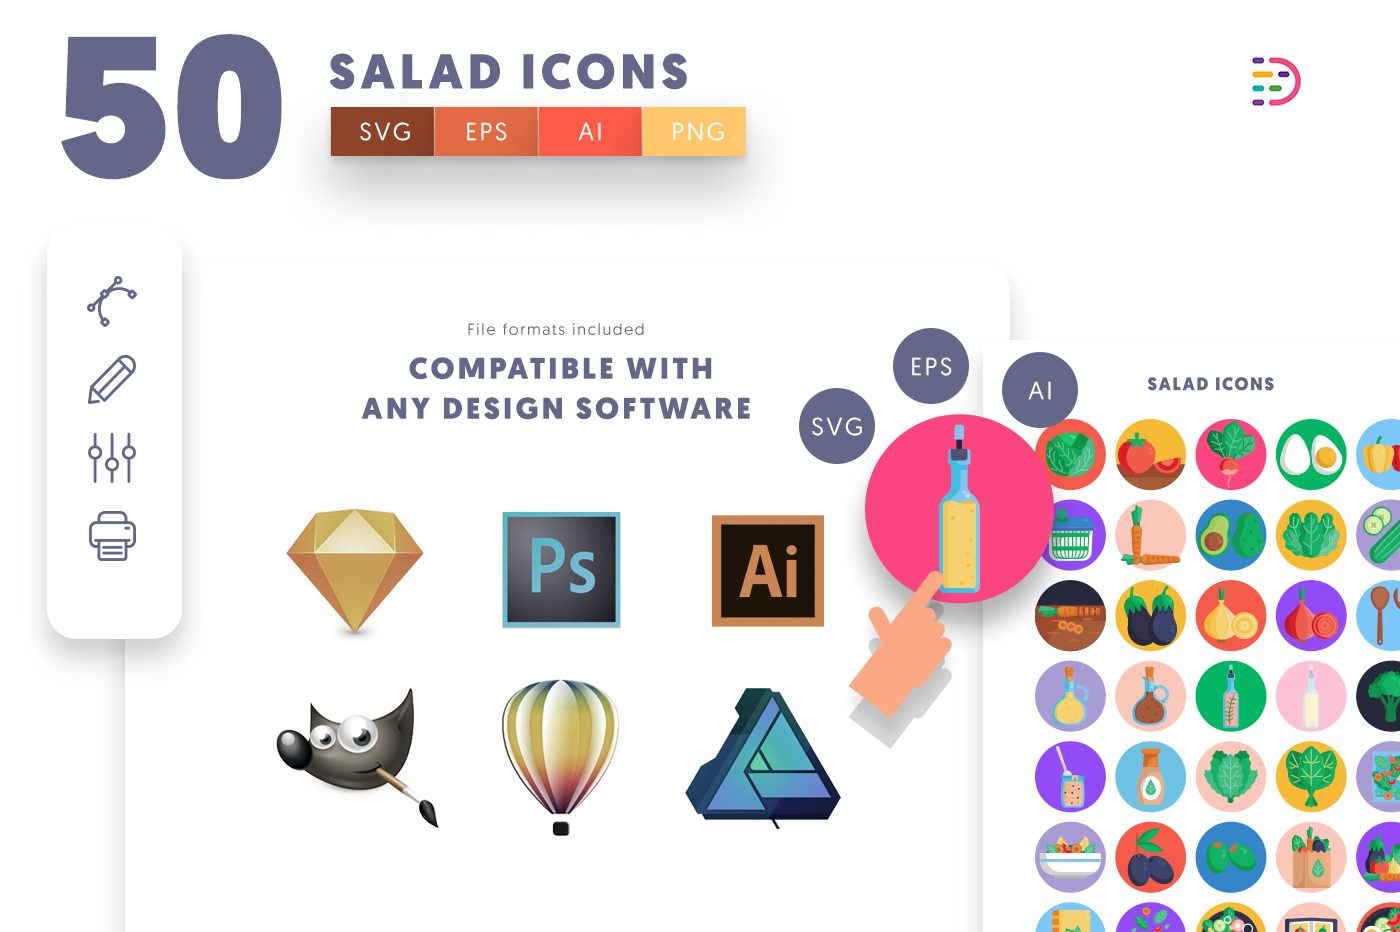 full vector 50 Salad Icons EPS, SVG, PNG